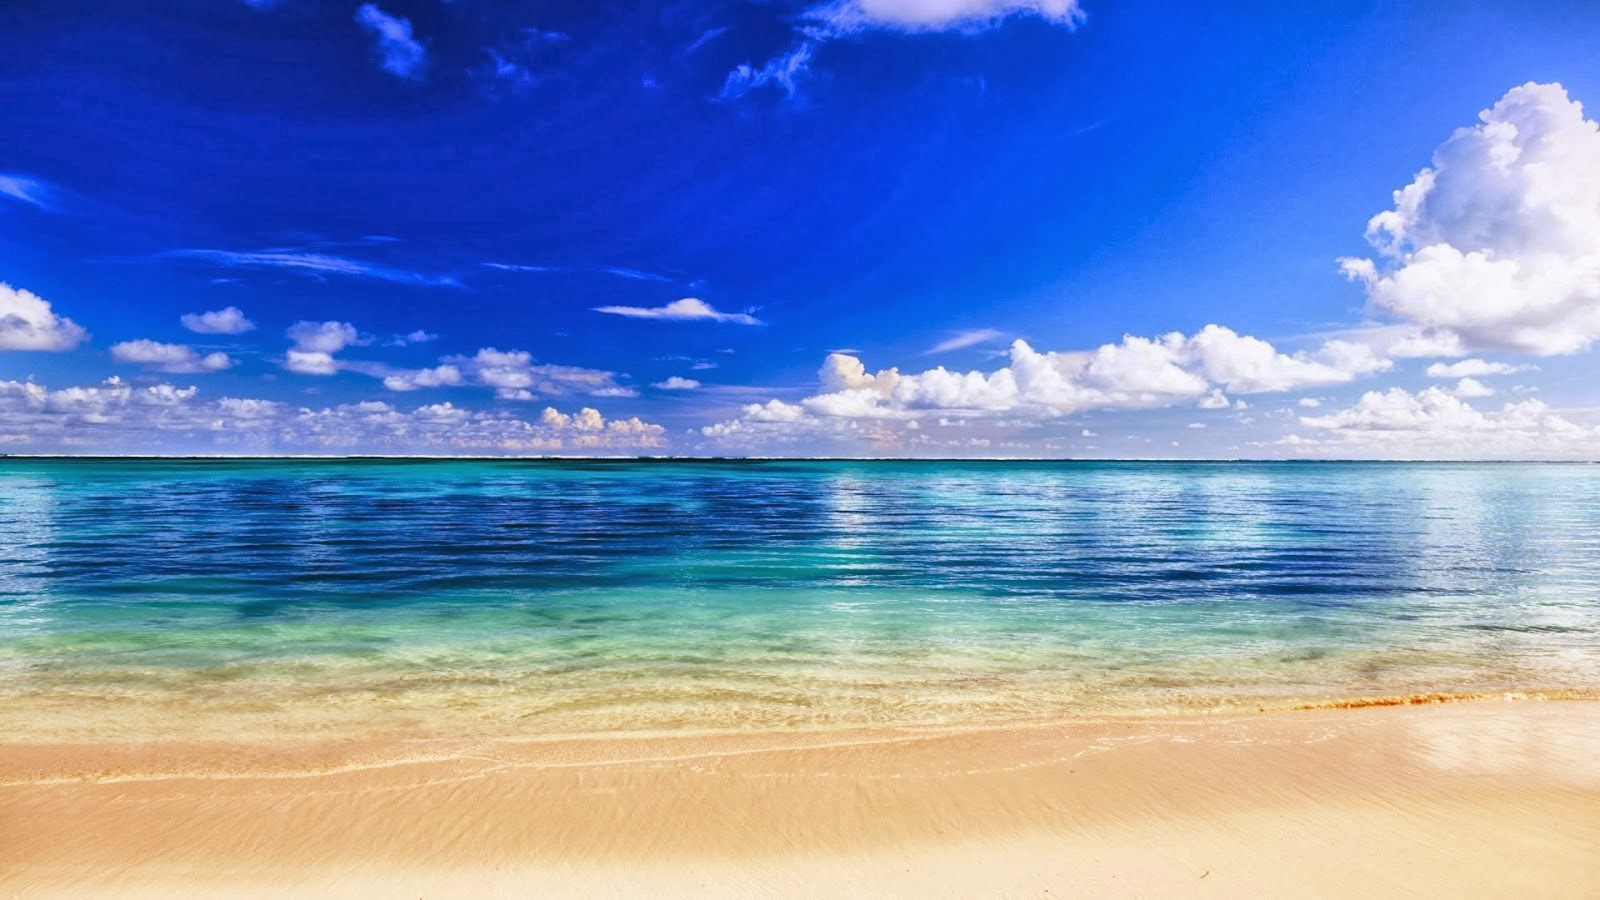 wallpapers 1080p blue water white sand beach hd wallpapers 1080p blue 1600x900